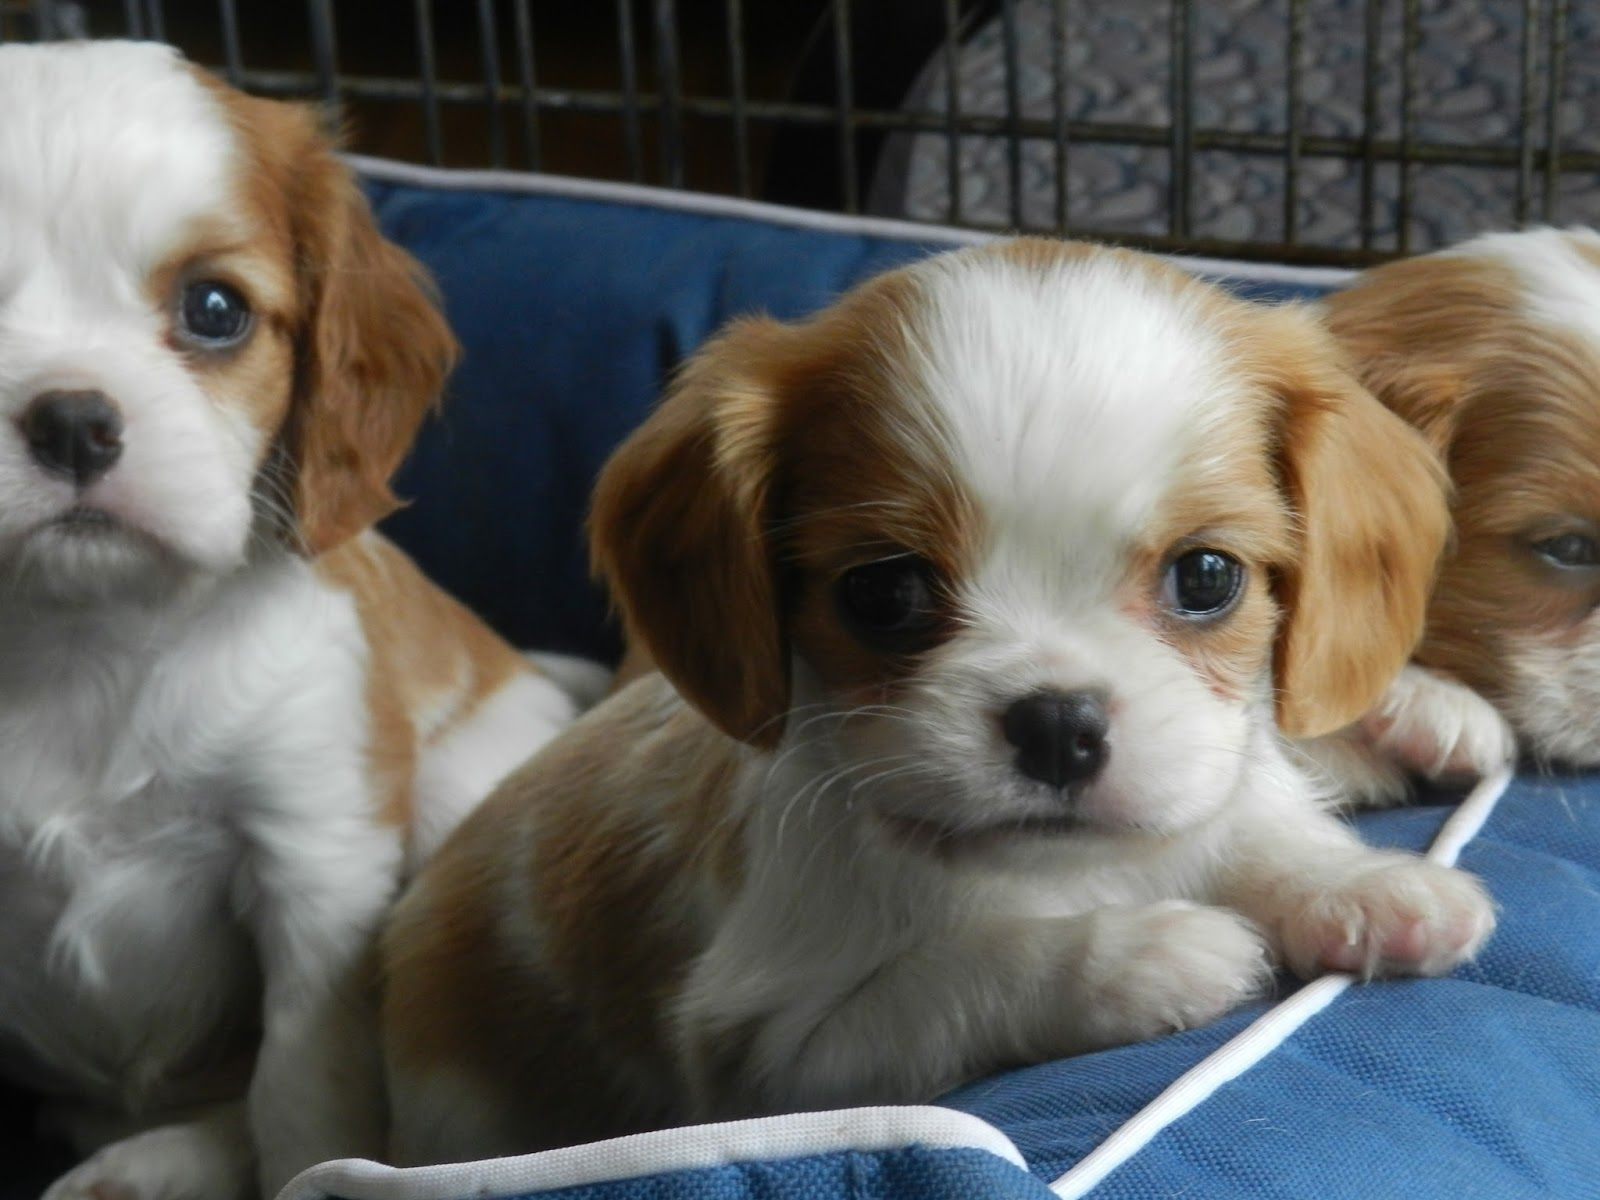 Pin By Matthew Jager On Cavalier King Charles Spaniels Cavalier King Charles King Charles Spaniel King Charles